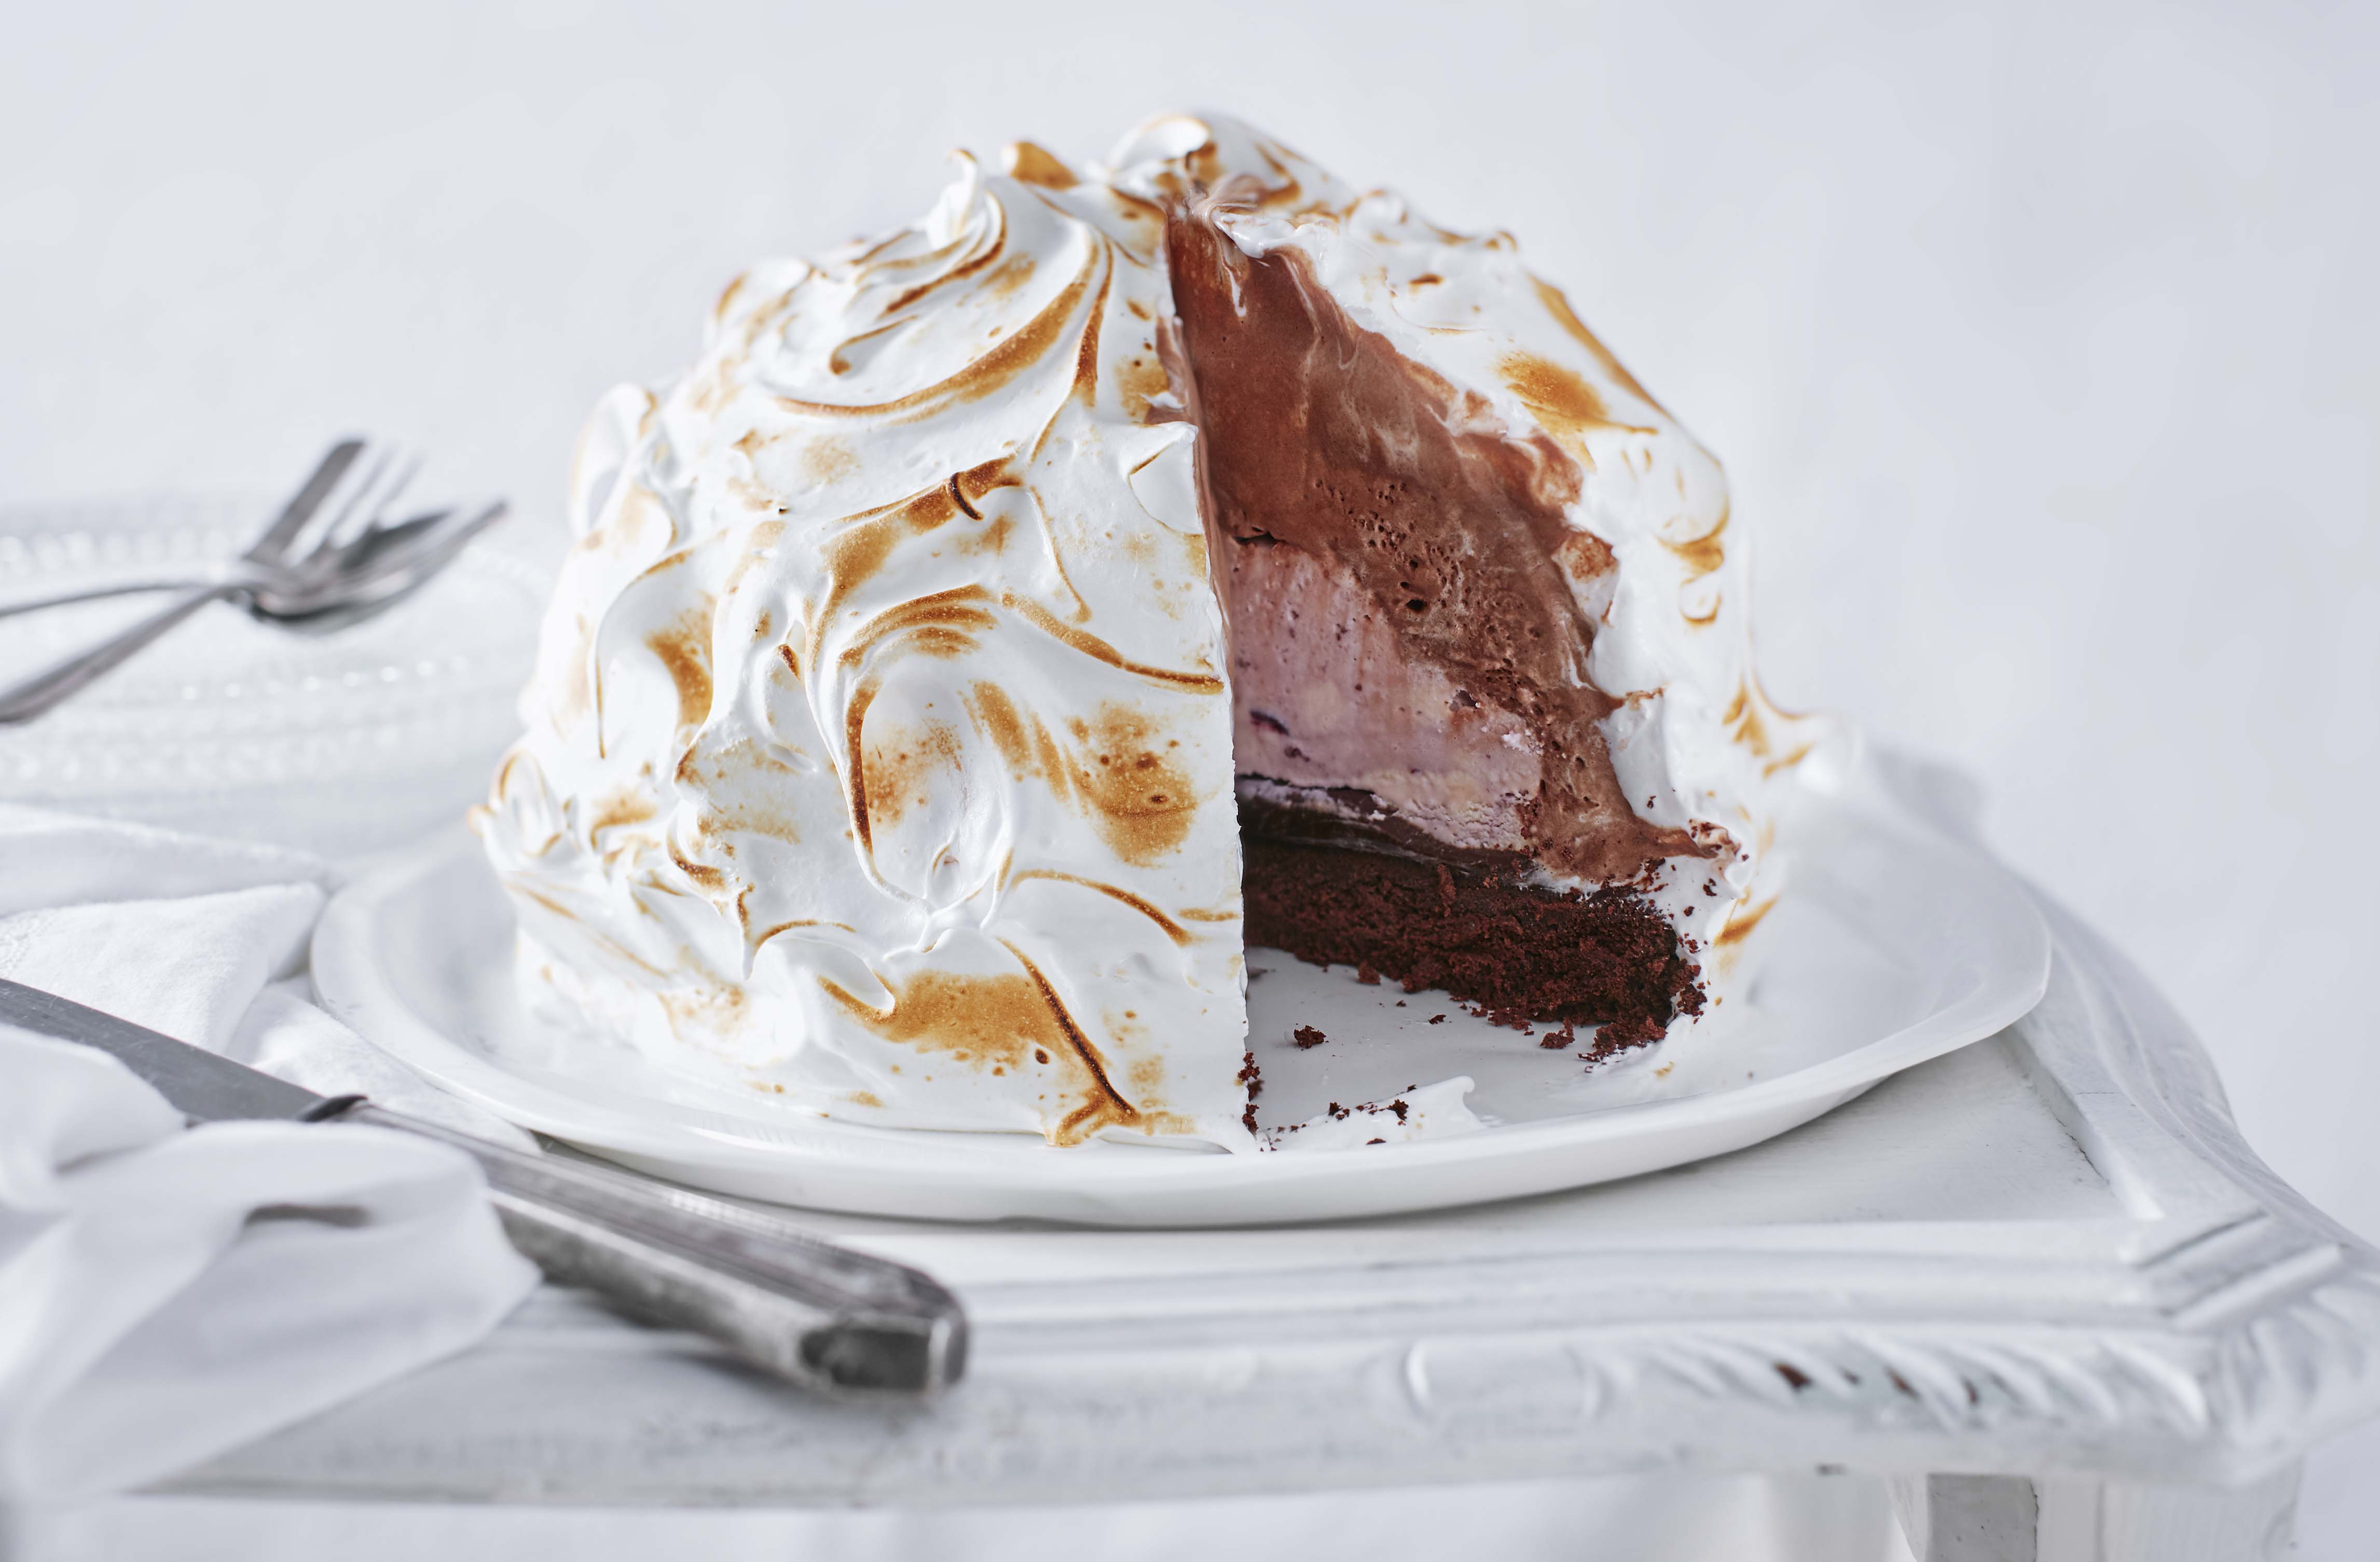 How to make baked Alaska